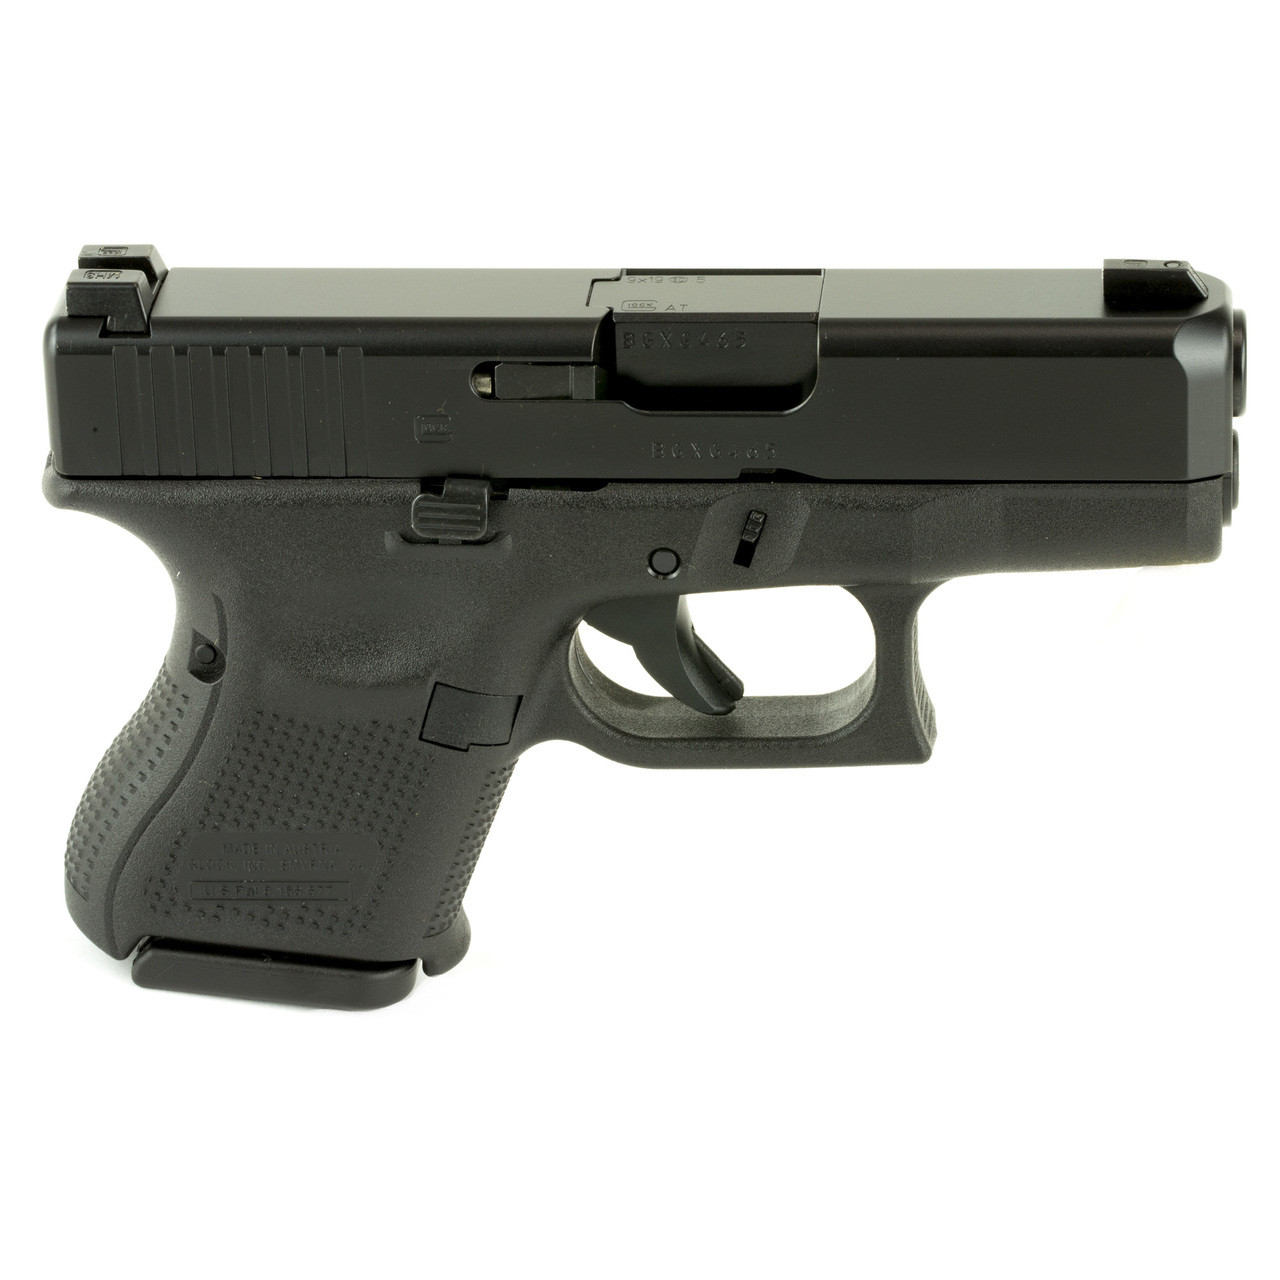 Glock 26 Gen 5, Safe Action, Sub Compact Pistol, 9MM, 3 42